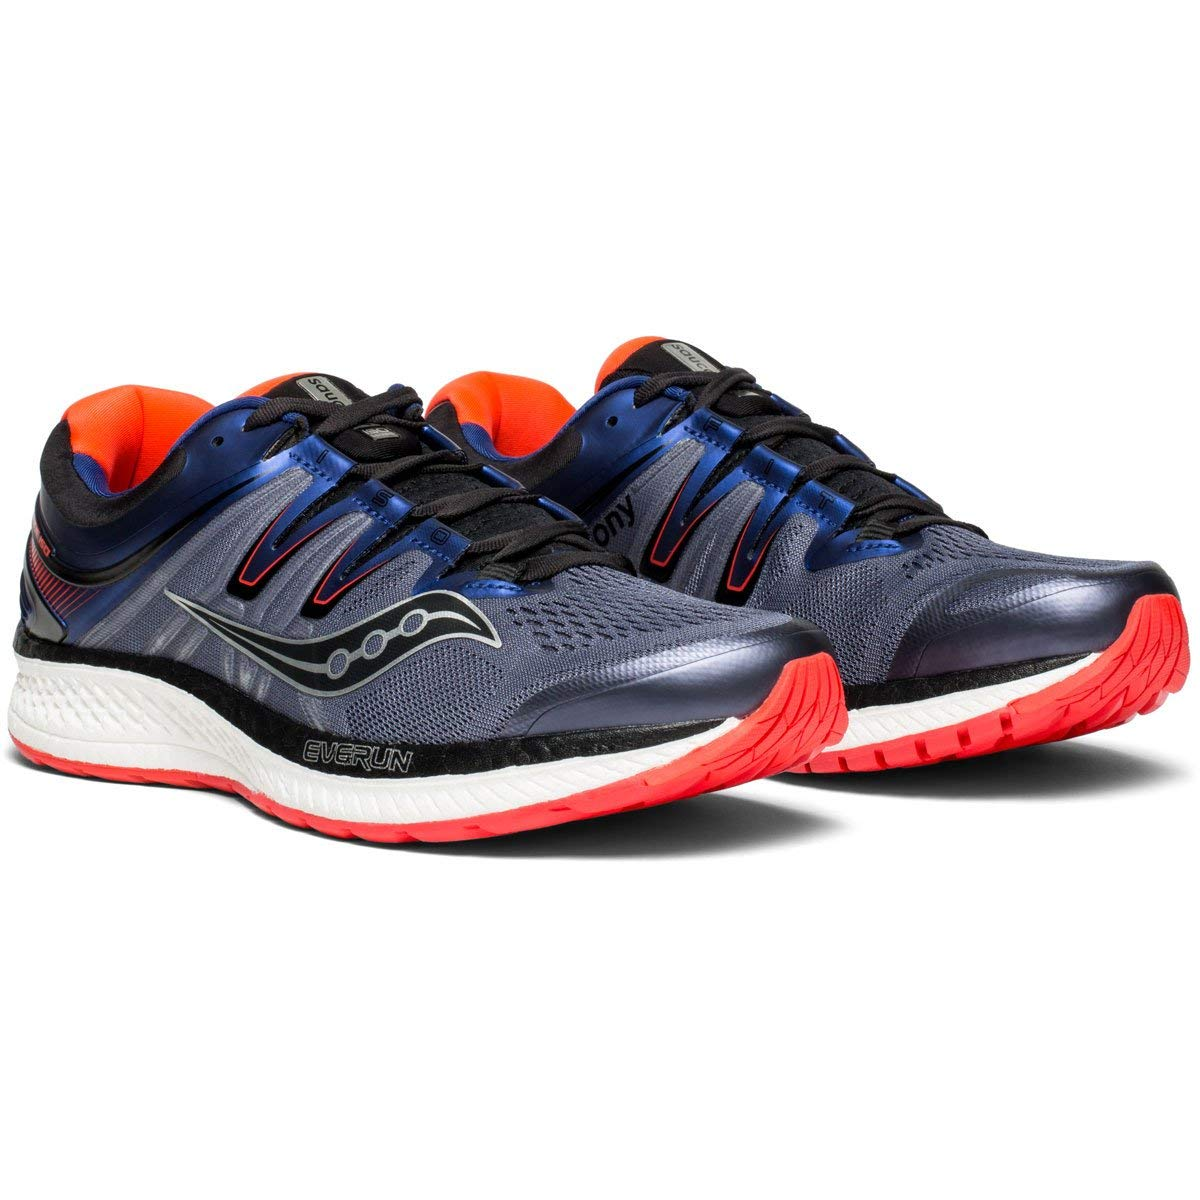 Details about Saucony Hurricane ISO 4 Mens Grey Red Running Gyms Shoes Trainers Sneakers